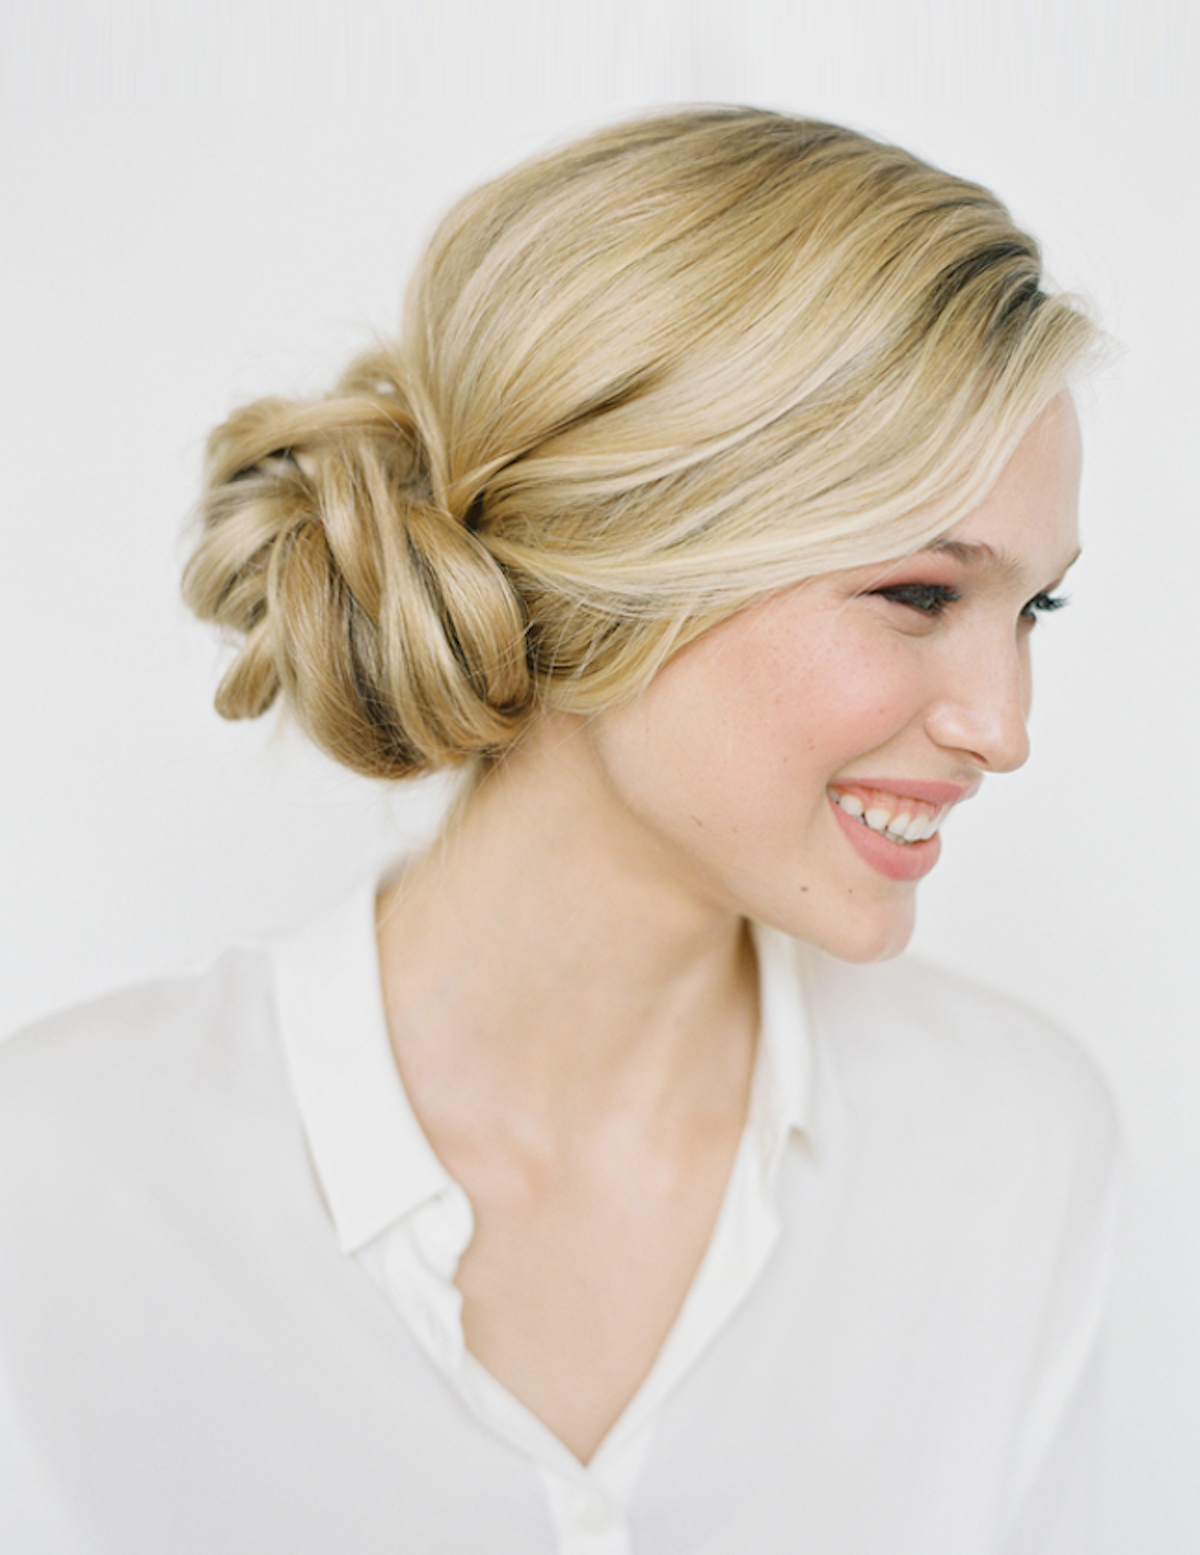 30 Quick And Easy Hair Tutorials For Every Hair Length Stylist